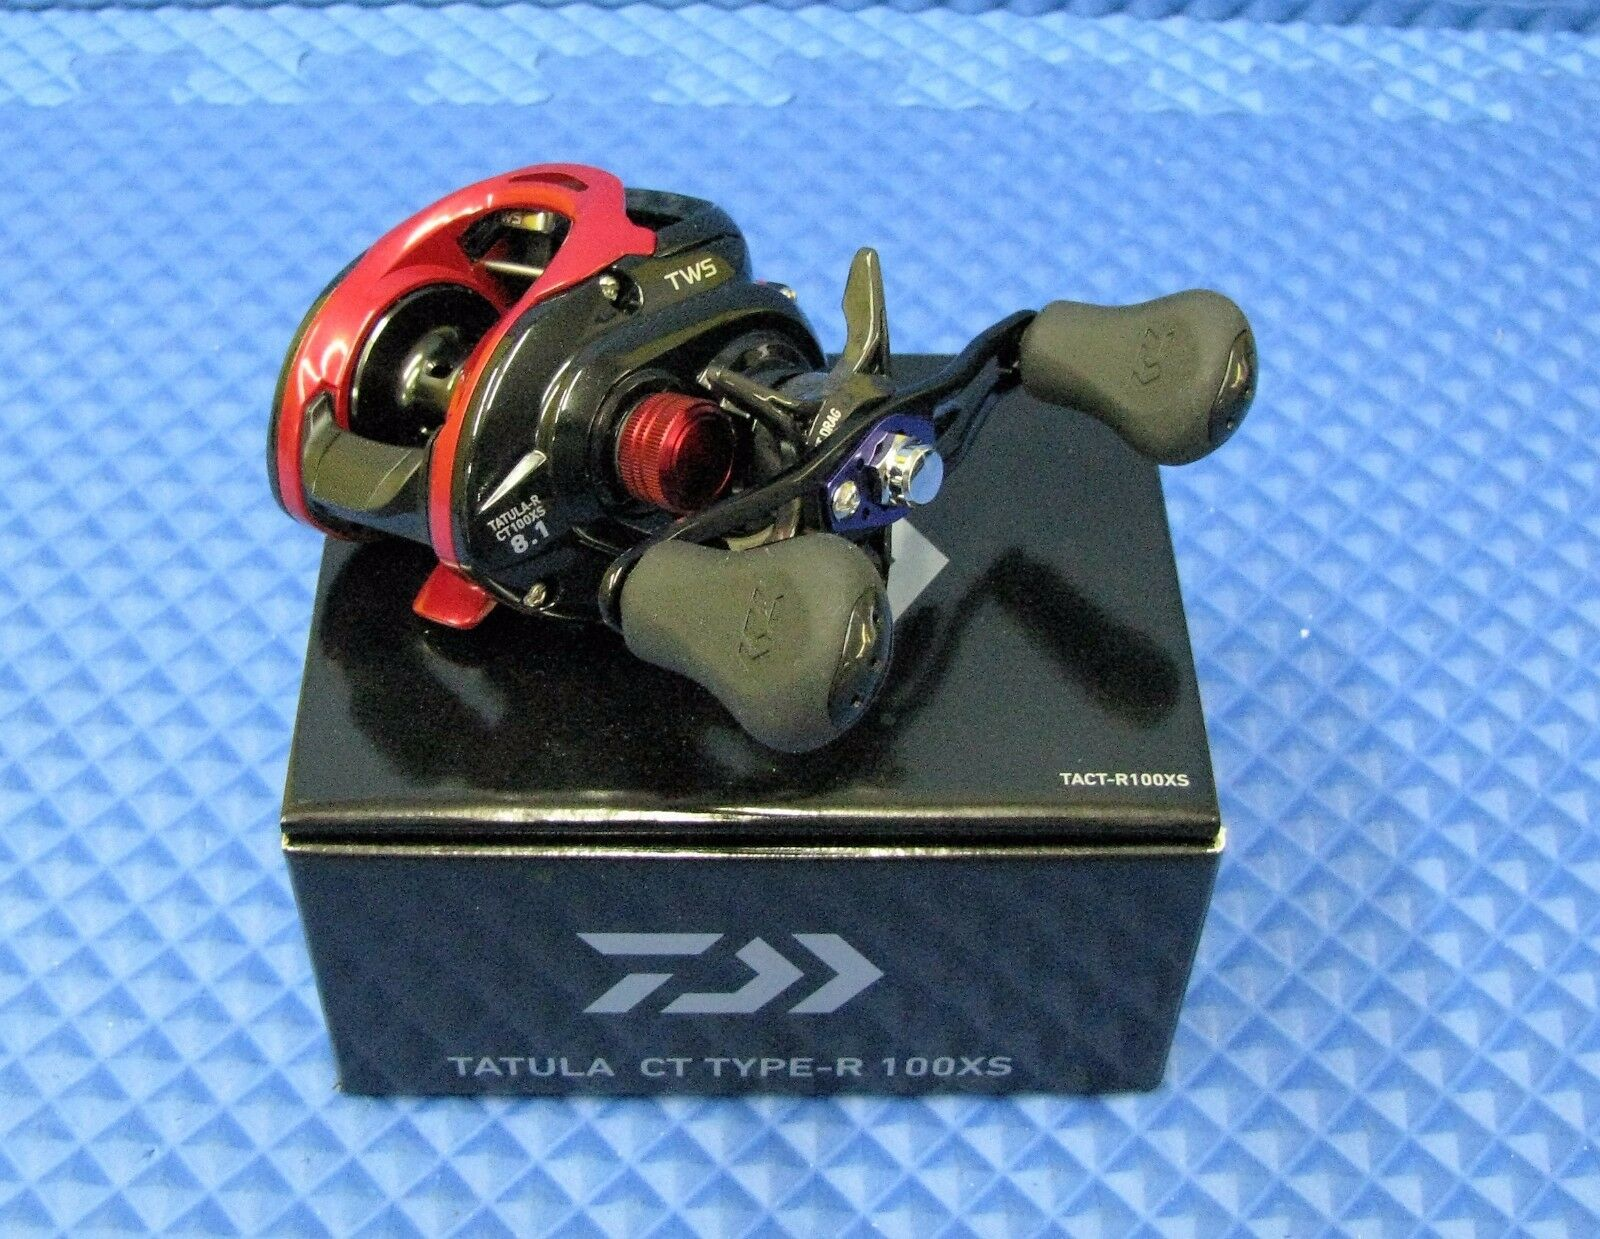 Daiwa  Baitcasting Reel With Double Handle Tatula CT Type-R 100XS TACT-R100XS  cheap and high quality